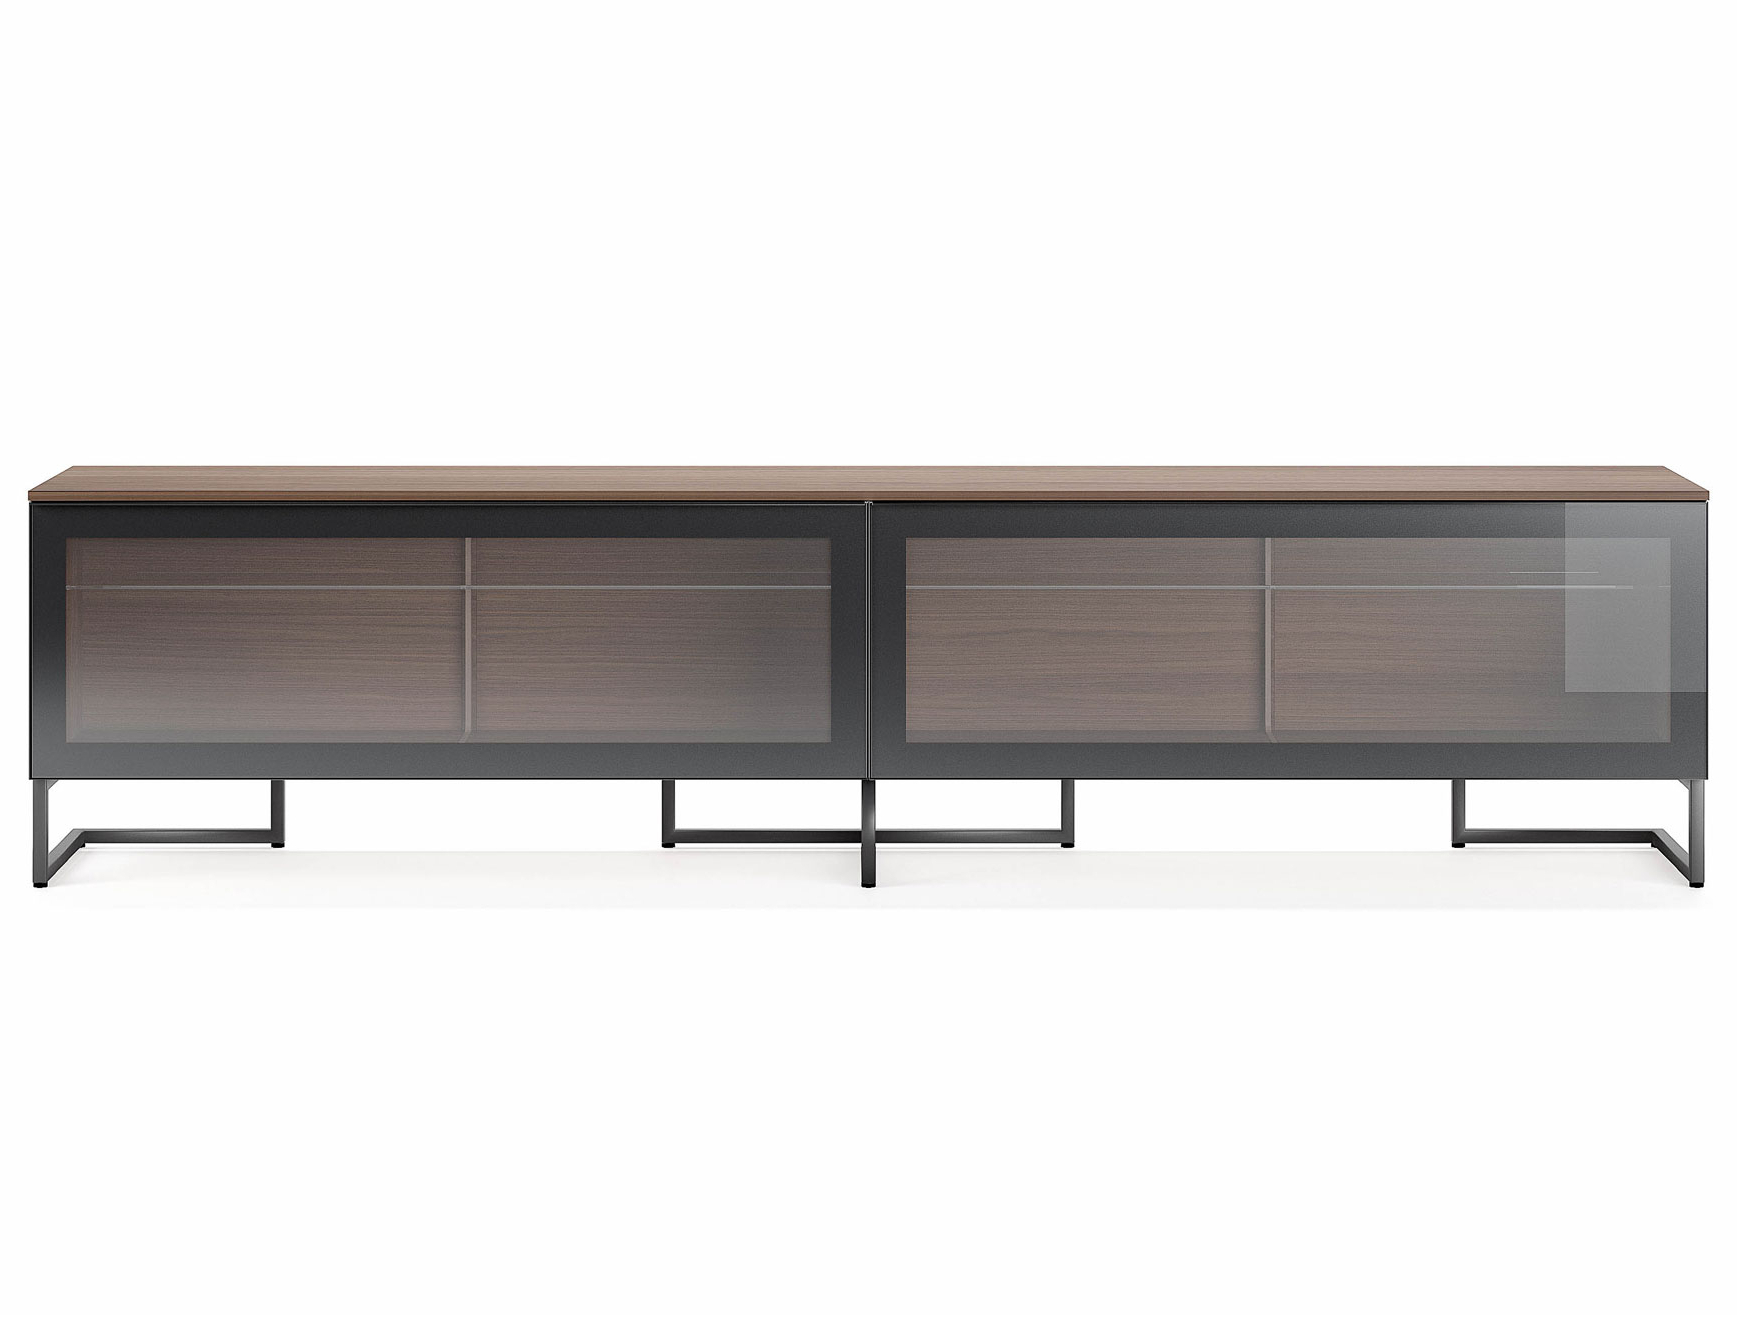 Newest Black Burnt Oak Sideboards Regarding Nella Vetrina Pianca Spazio Sgm240 Contemporary Italian Tv Unit In (View 12 of 20)